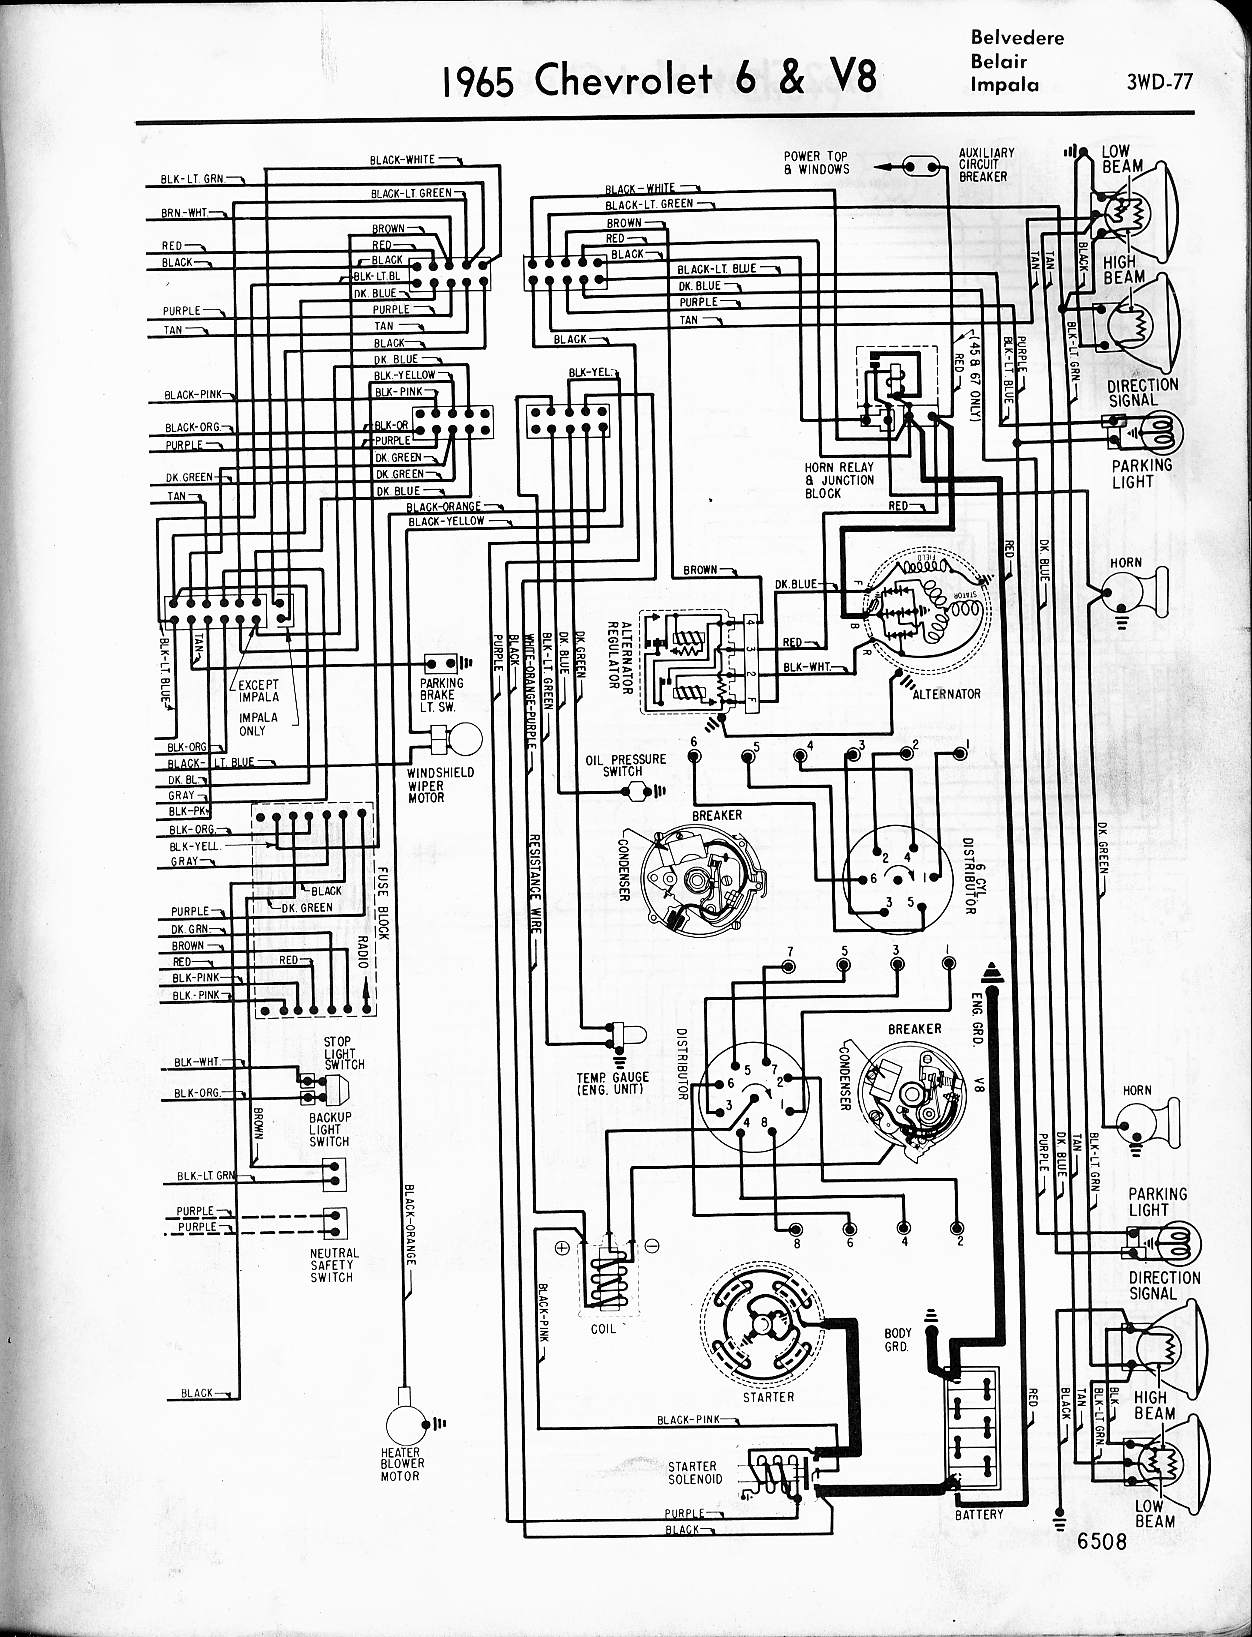 65 Jeep Cj5 Ignition Switch Wiring Archive Of Automotive Harness 1970 Diagram Schematics Rh Thyl Co Uk